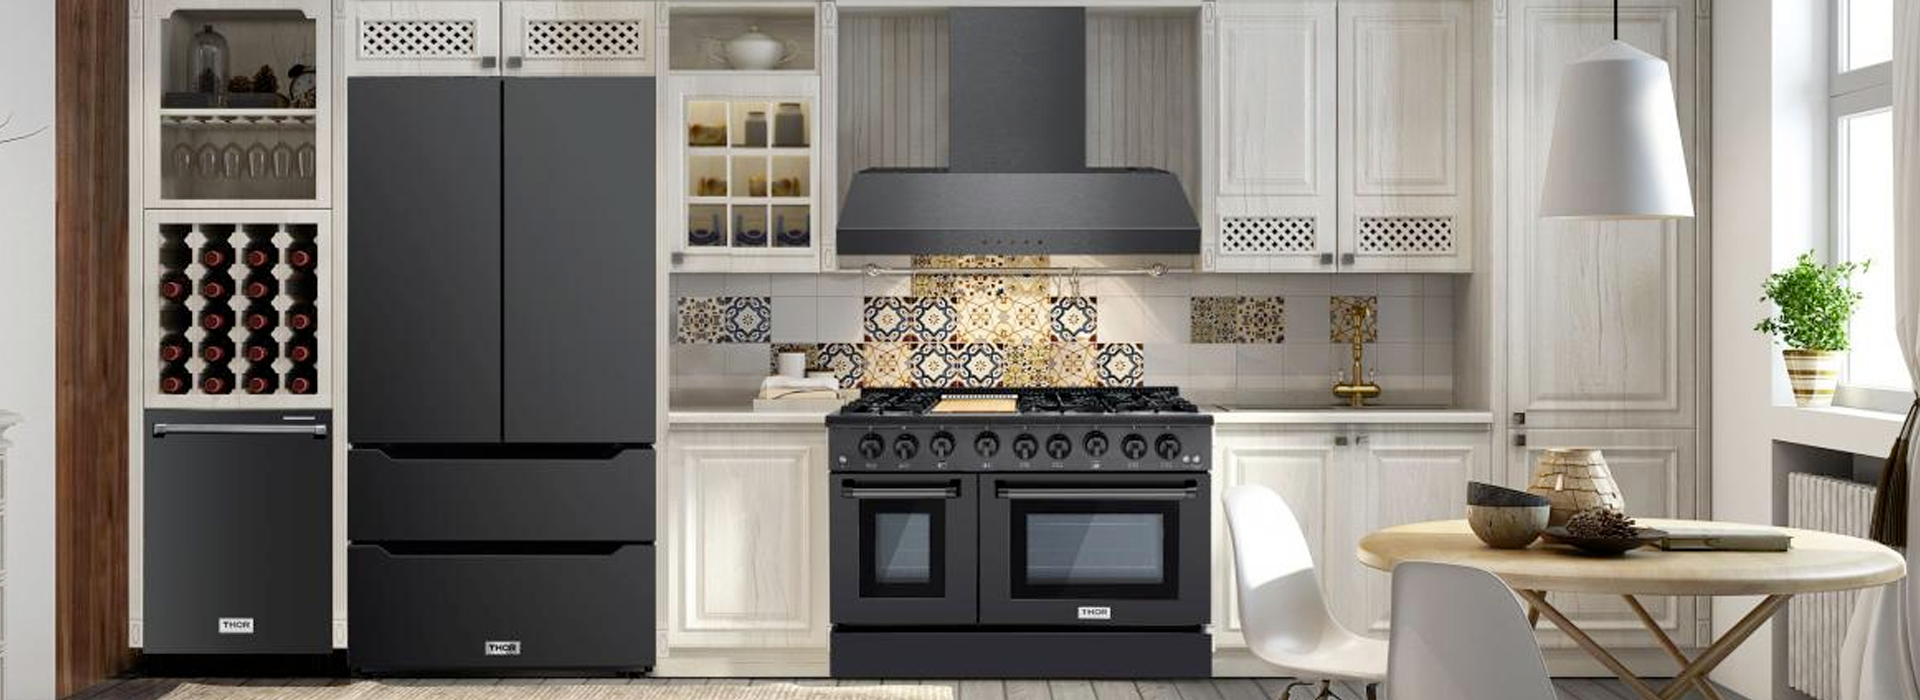 Ready to Plan Your Dream Kitchen?